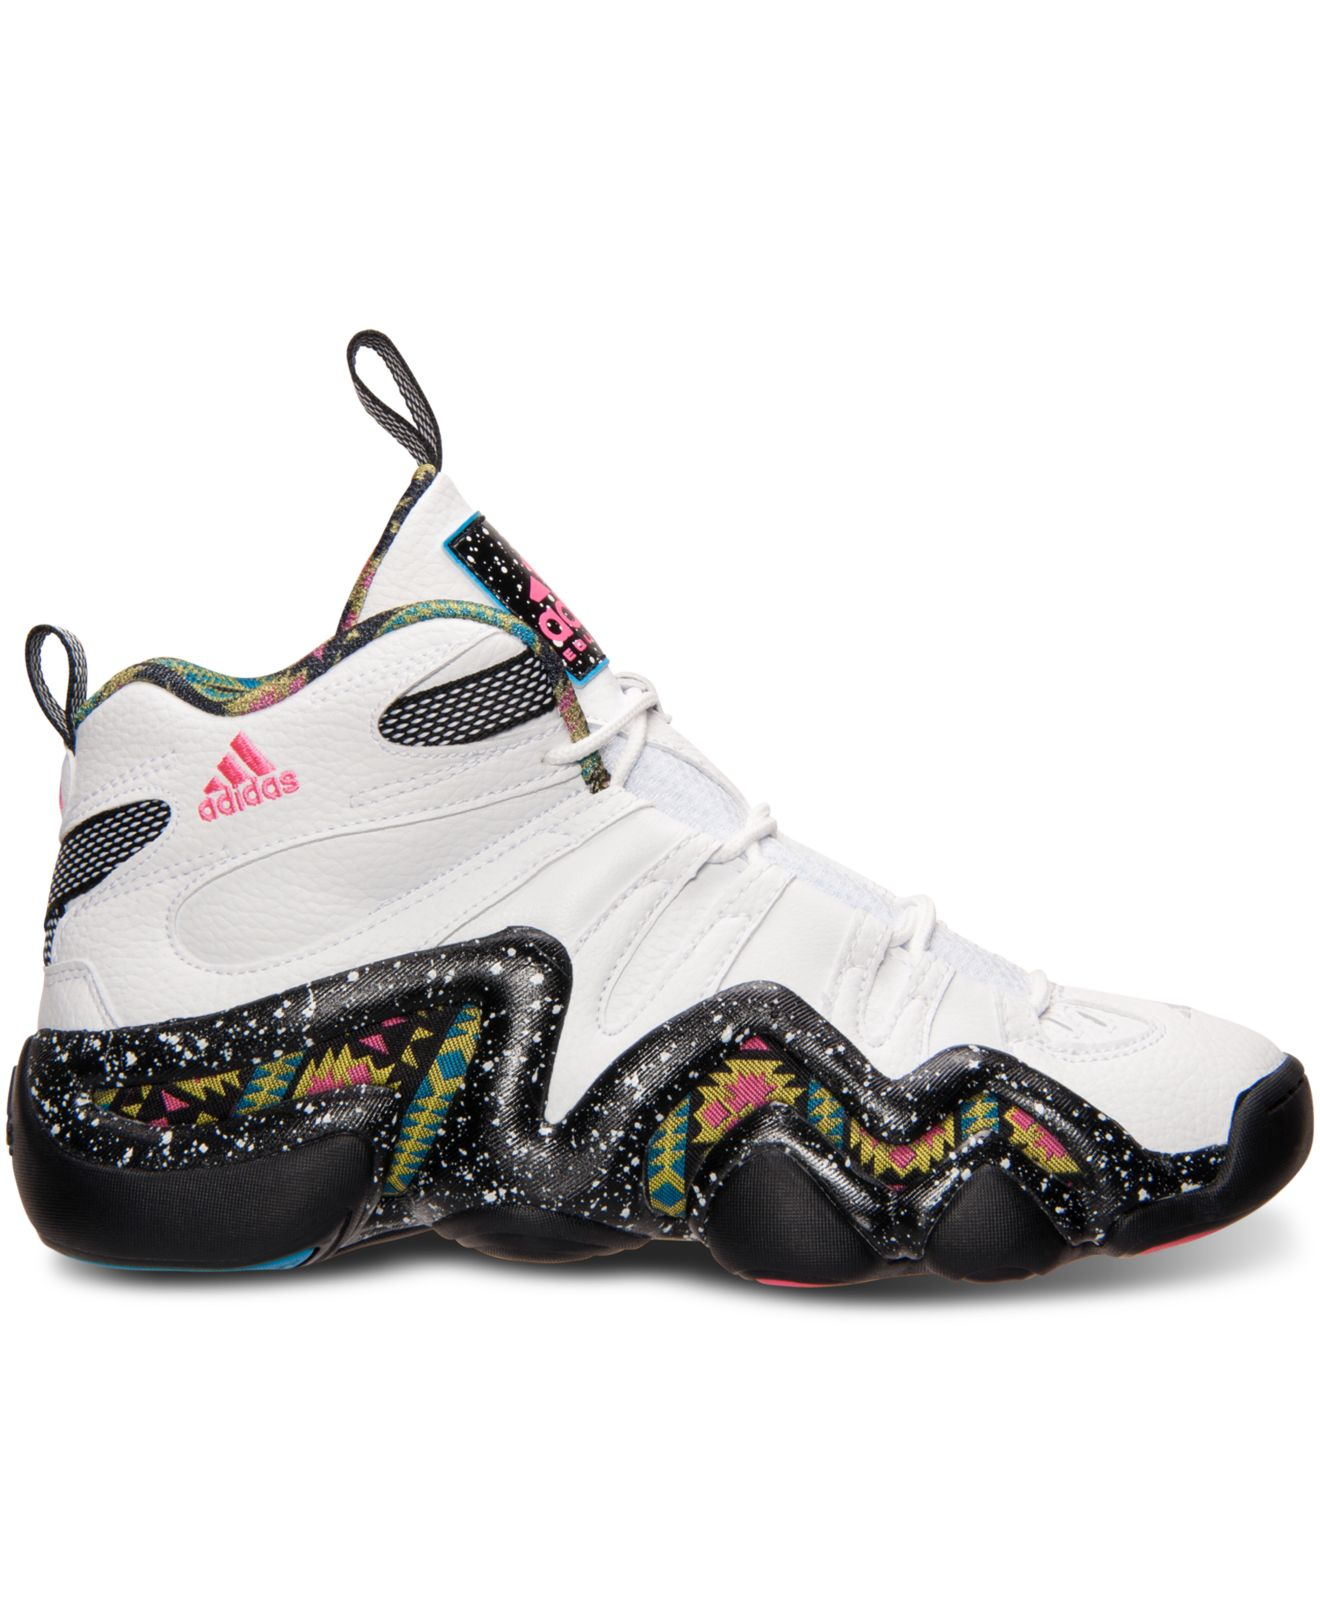 1267abb690d Lyst - adidas Men s Crazy 8 Basketball Sneakers From Finish Line in ...